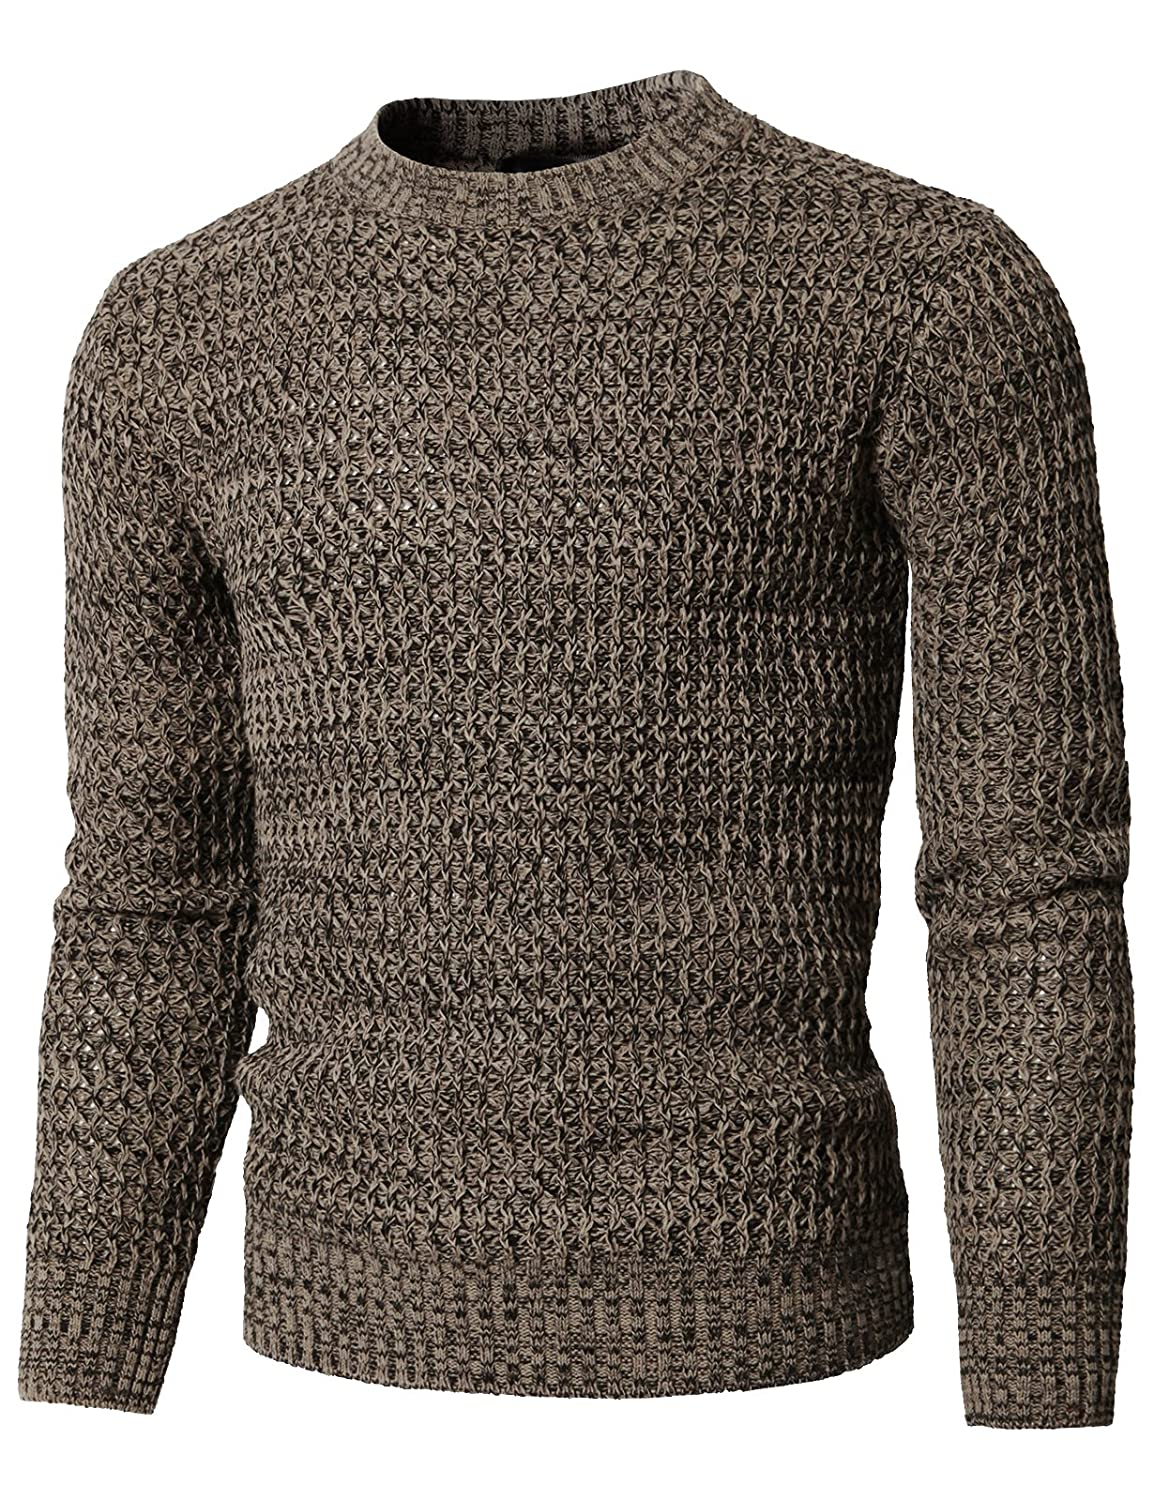 H2H Mens Casual Slim Fit Basic Designed Knit Pullover Sweater